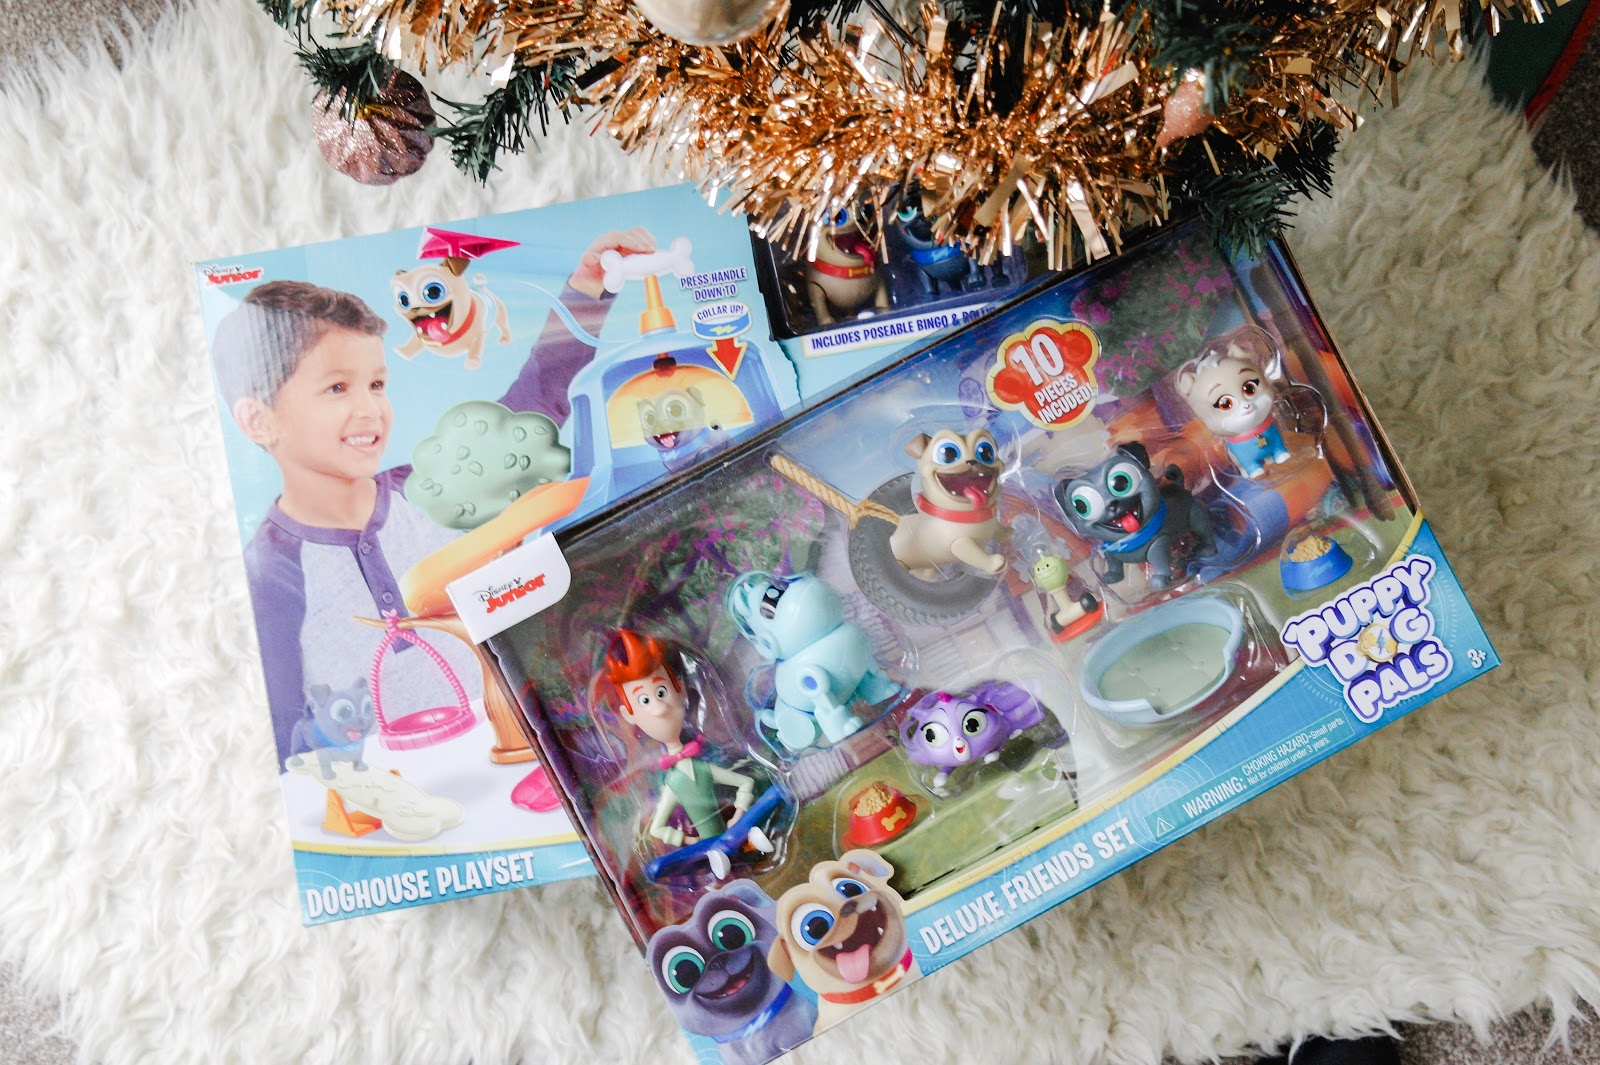 Puppy Dog Pals Doghouse Playset Mimi Rose And Me